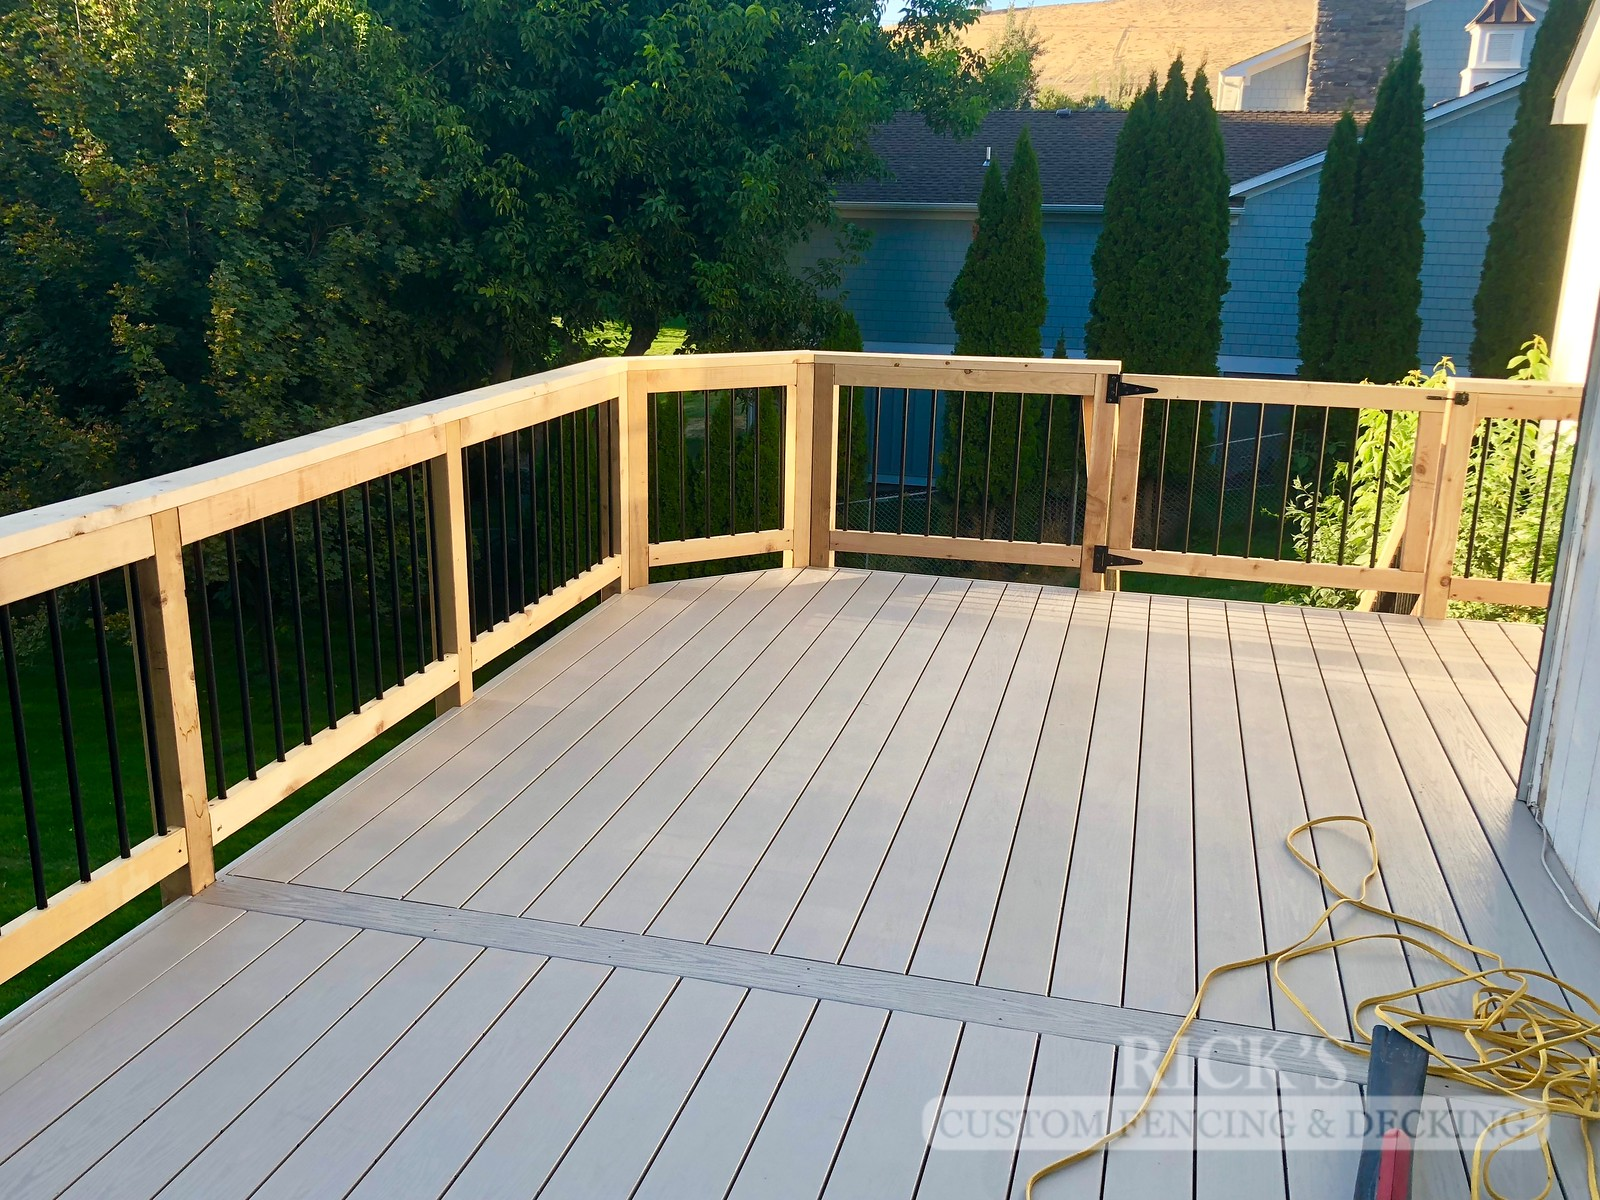 1251 - LifeStyle HDPE Composite Decking